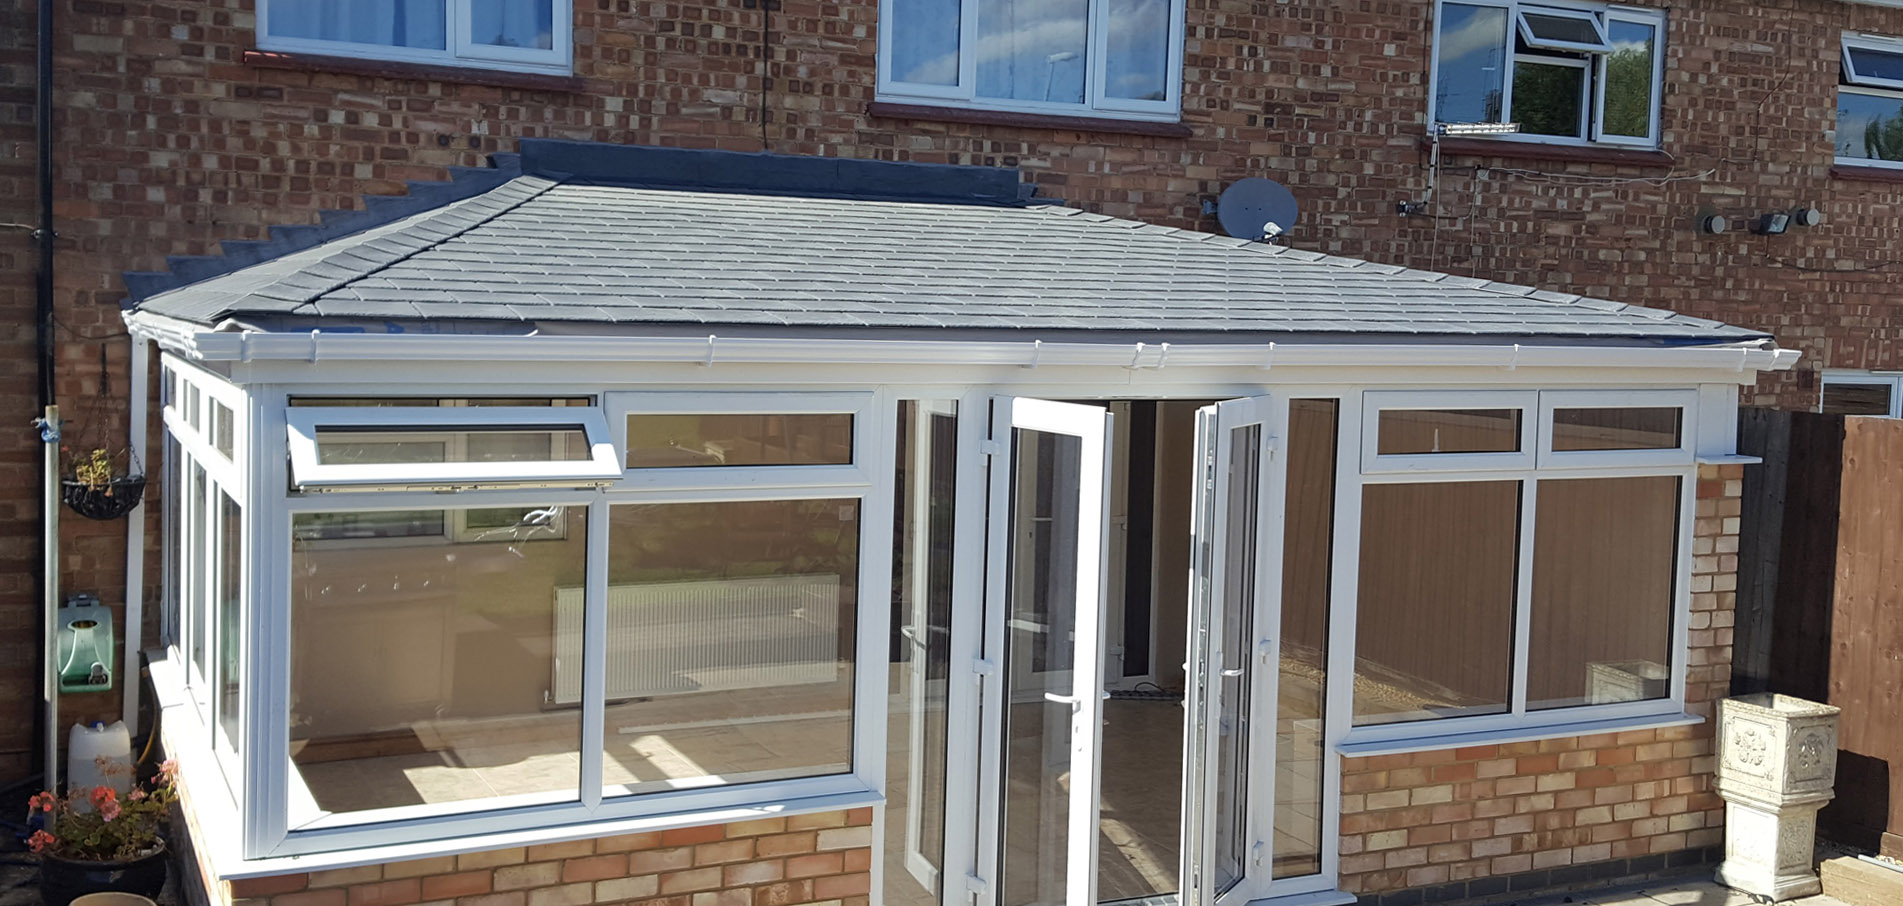 Conservatory Roof Conversion >> Tiled Conservatory Roof Conversion Northampton Milton Keynes